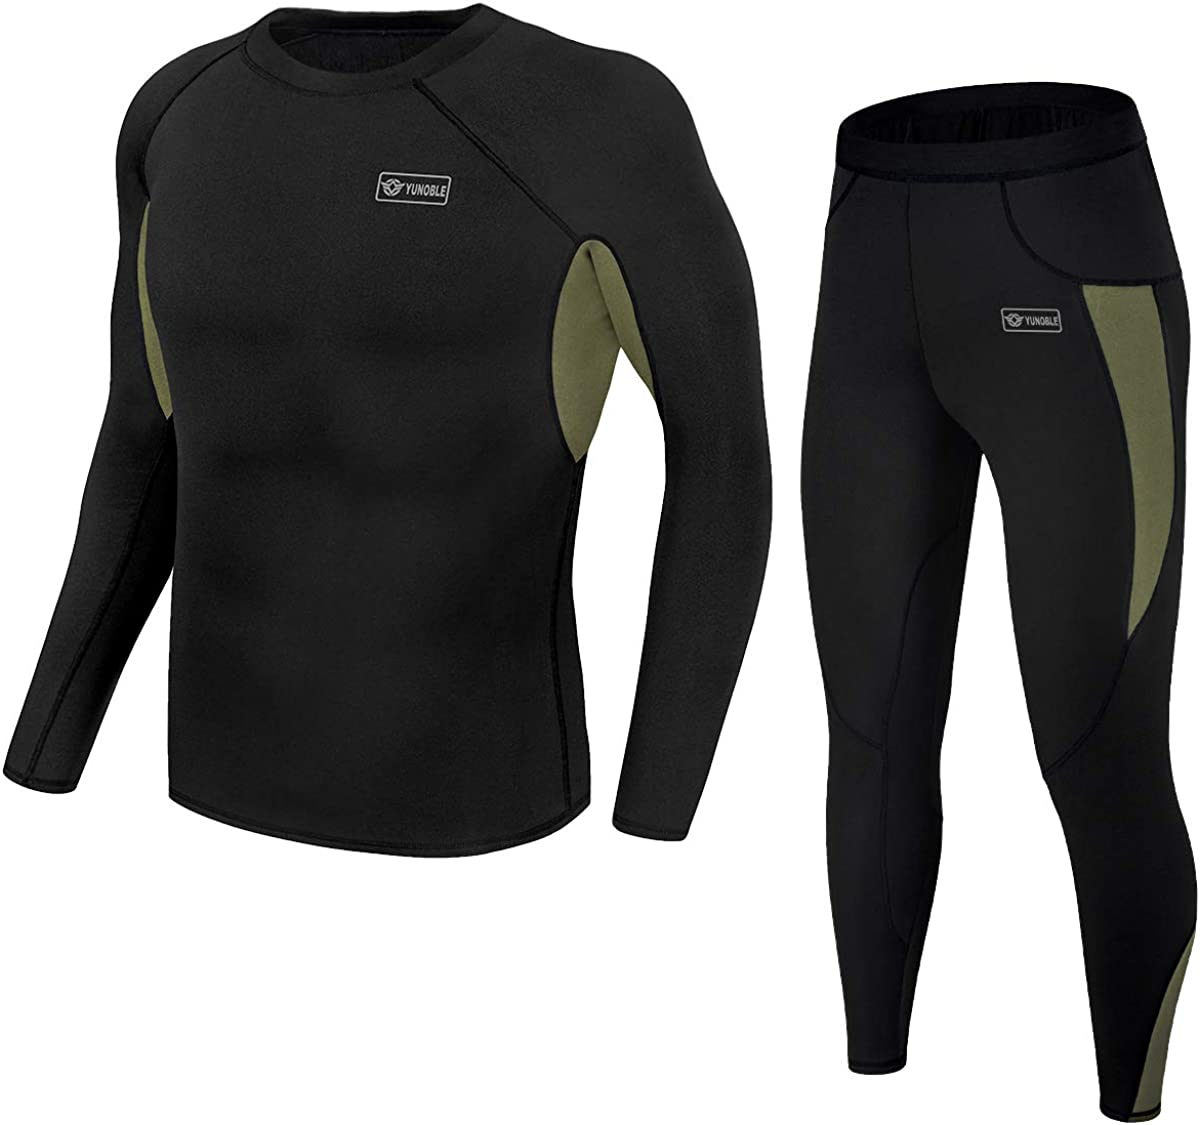 Men's Thermal Underwear Set, Winter Fleece Lined Sport Long Johns Base Layer Quick Drying Thermo for Hunting Skiing